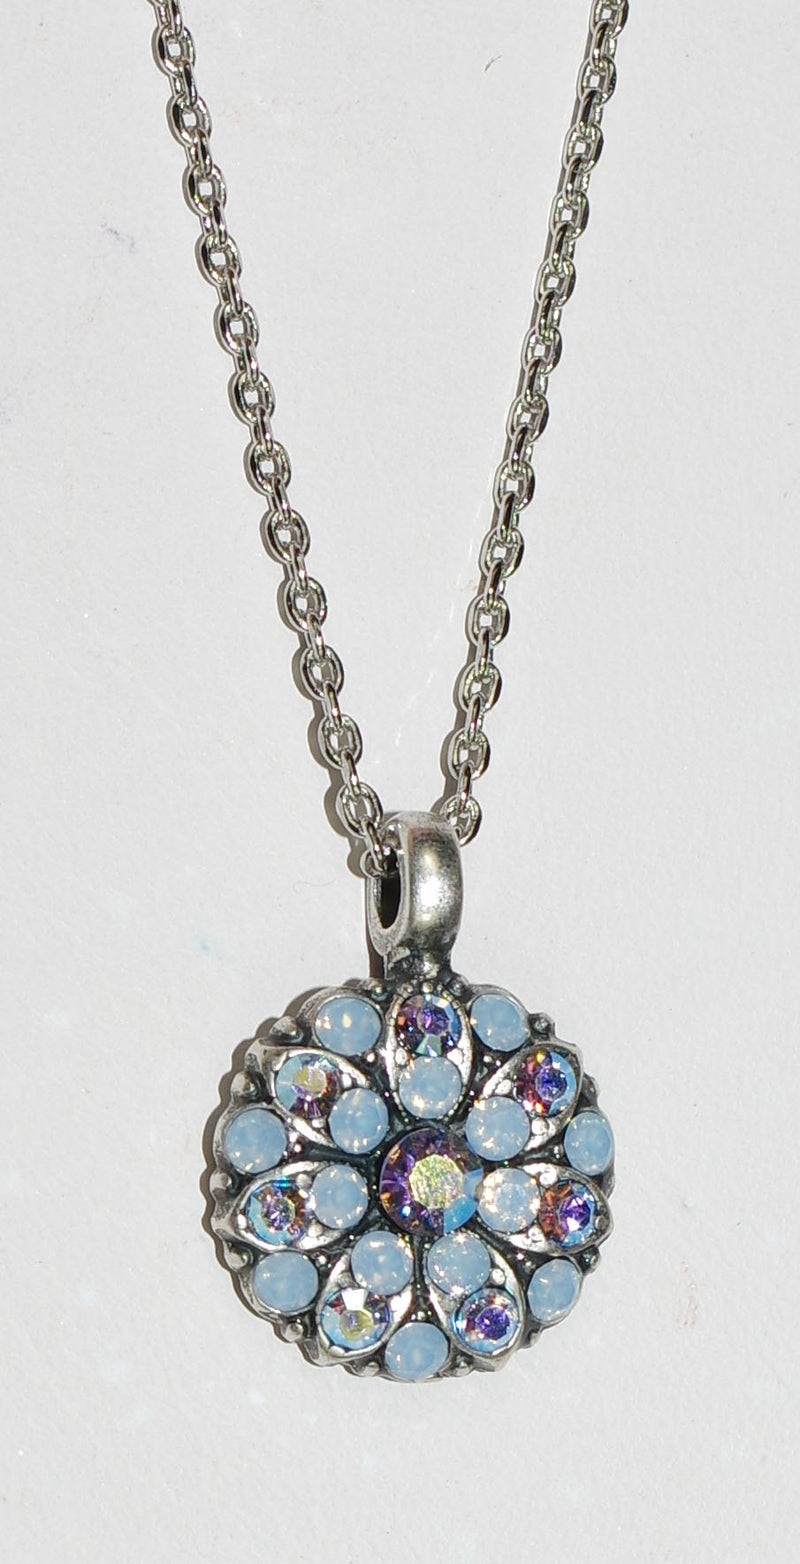 "MARIANA ANGEL PENDANT PERIWINKLE: blue, a/b stones in silver setting, 18"" adjustable chain"